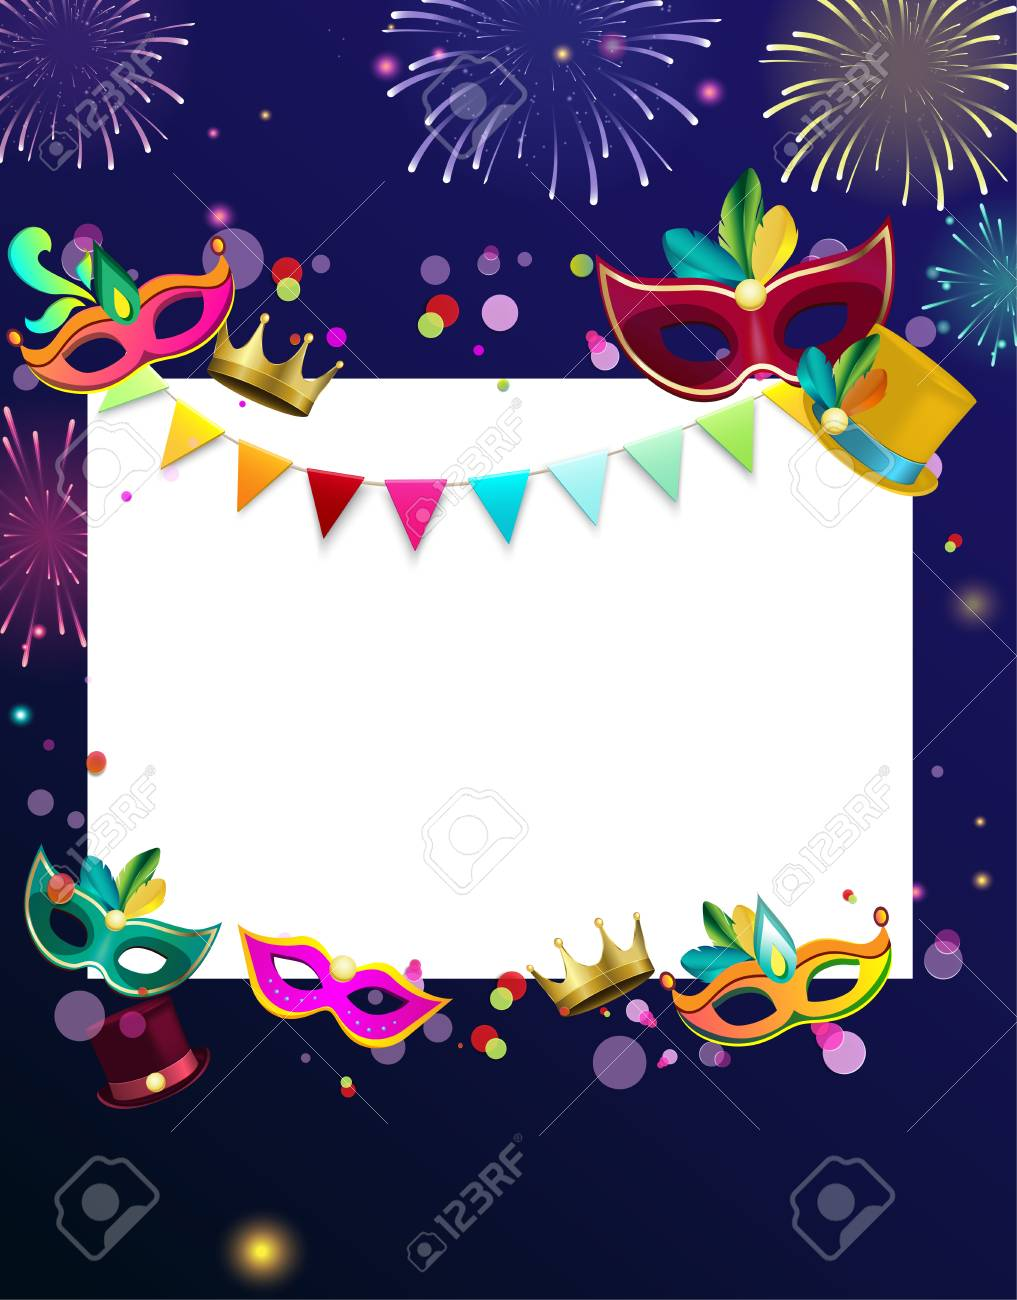 blue and white carnival background with colour masks and fireworks